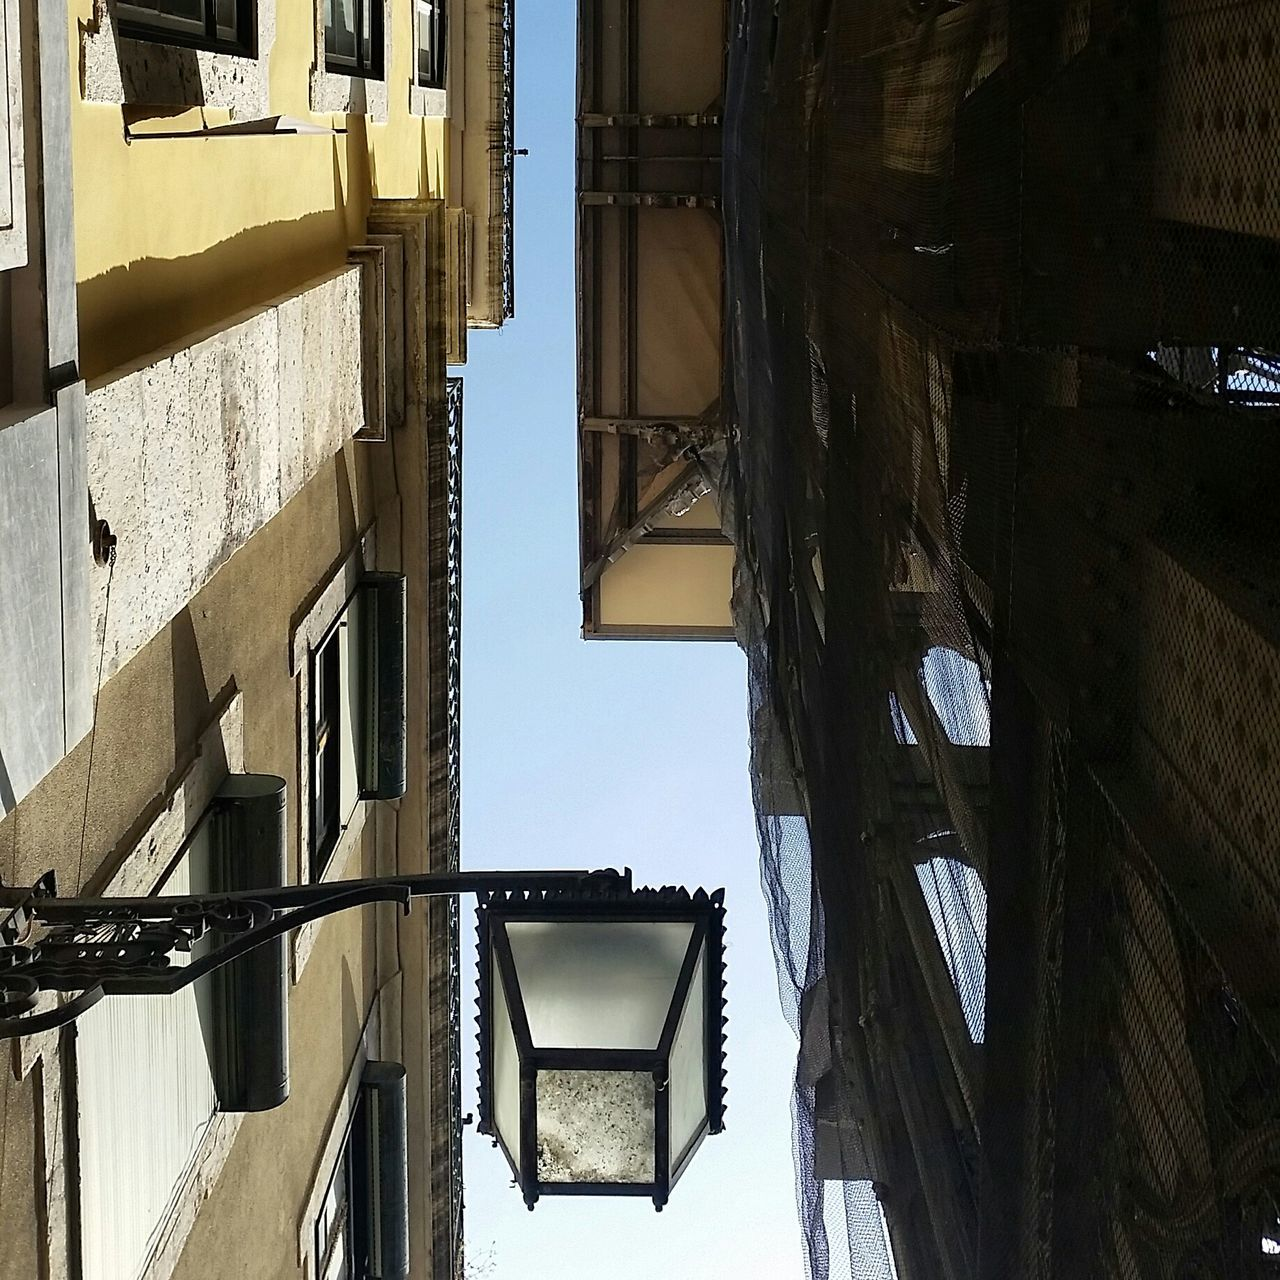 Directly Below Shot Of Street Light And Buildings Against Clear Sky